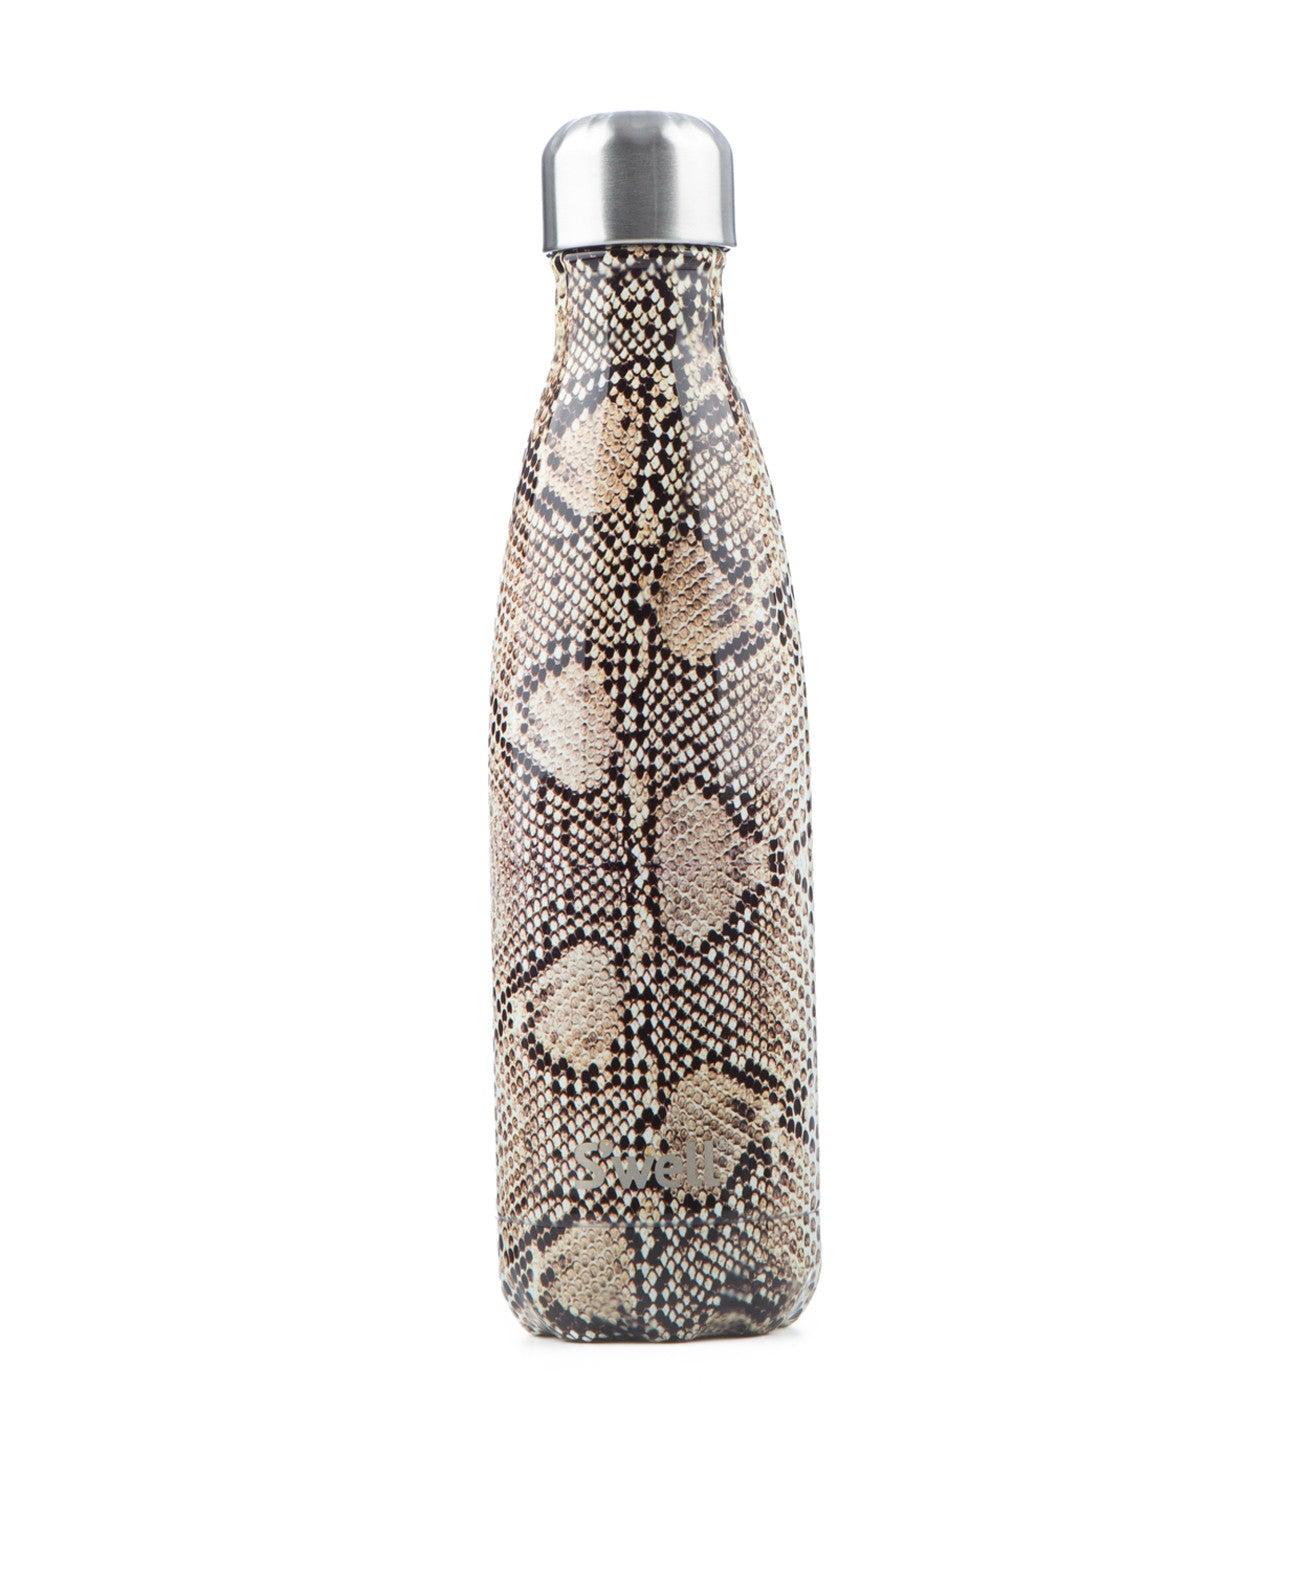 Sandy Python Bottle (17oz) - Koko & Palenki - 1